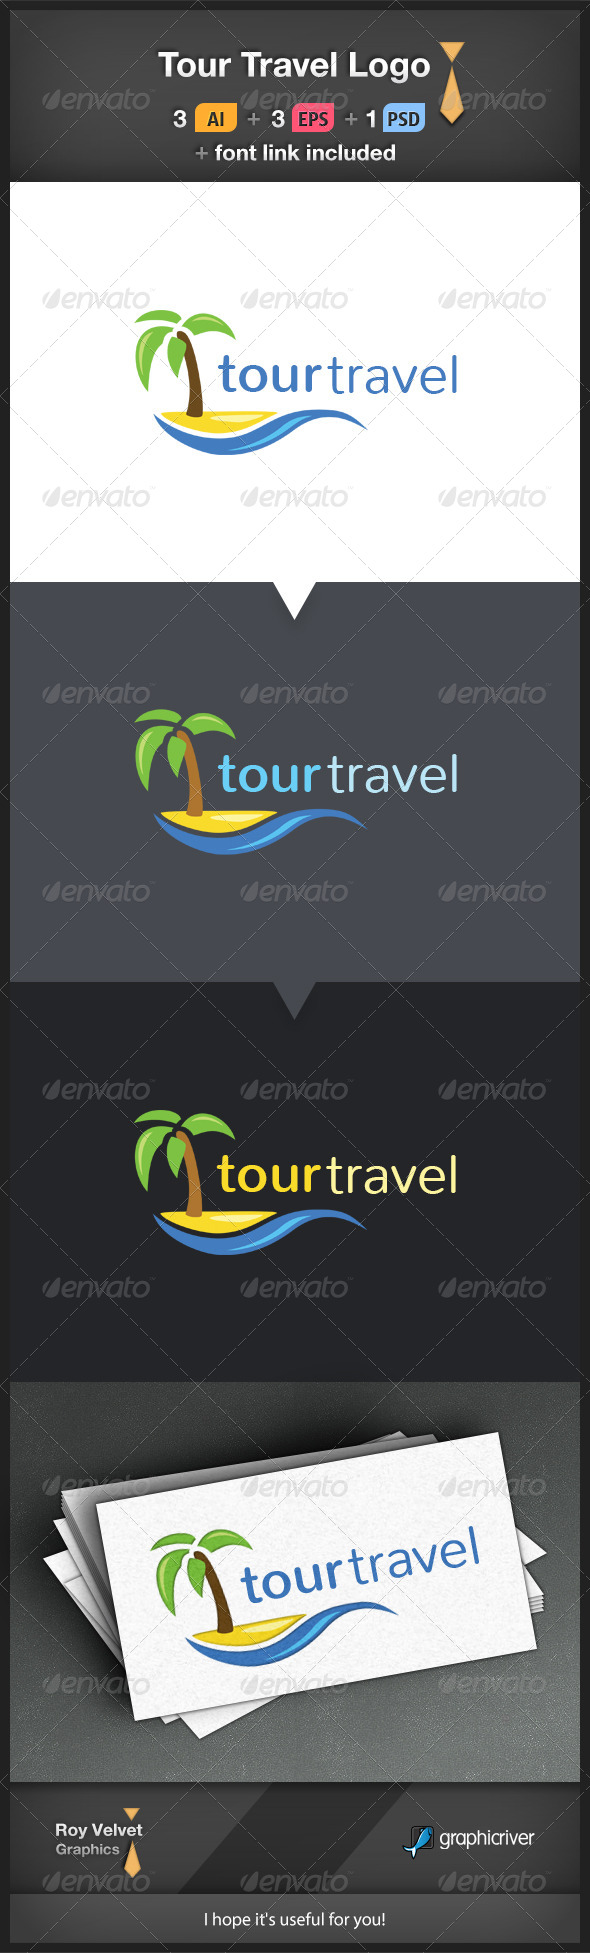 Tour Travel Logo - Symbols Logo Templates